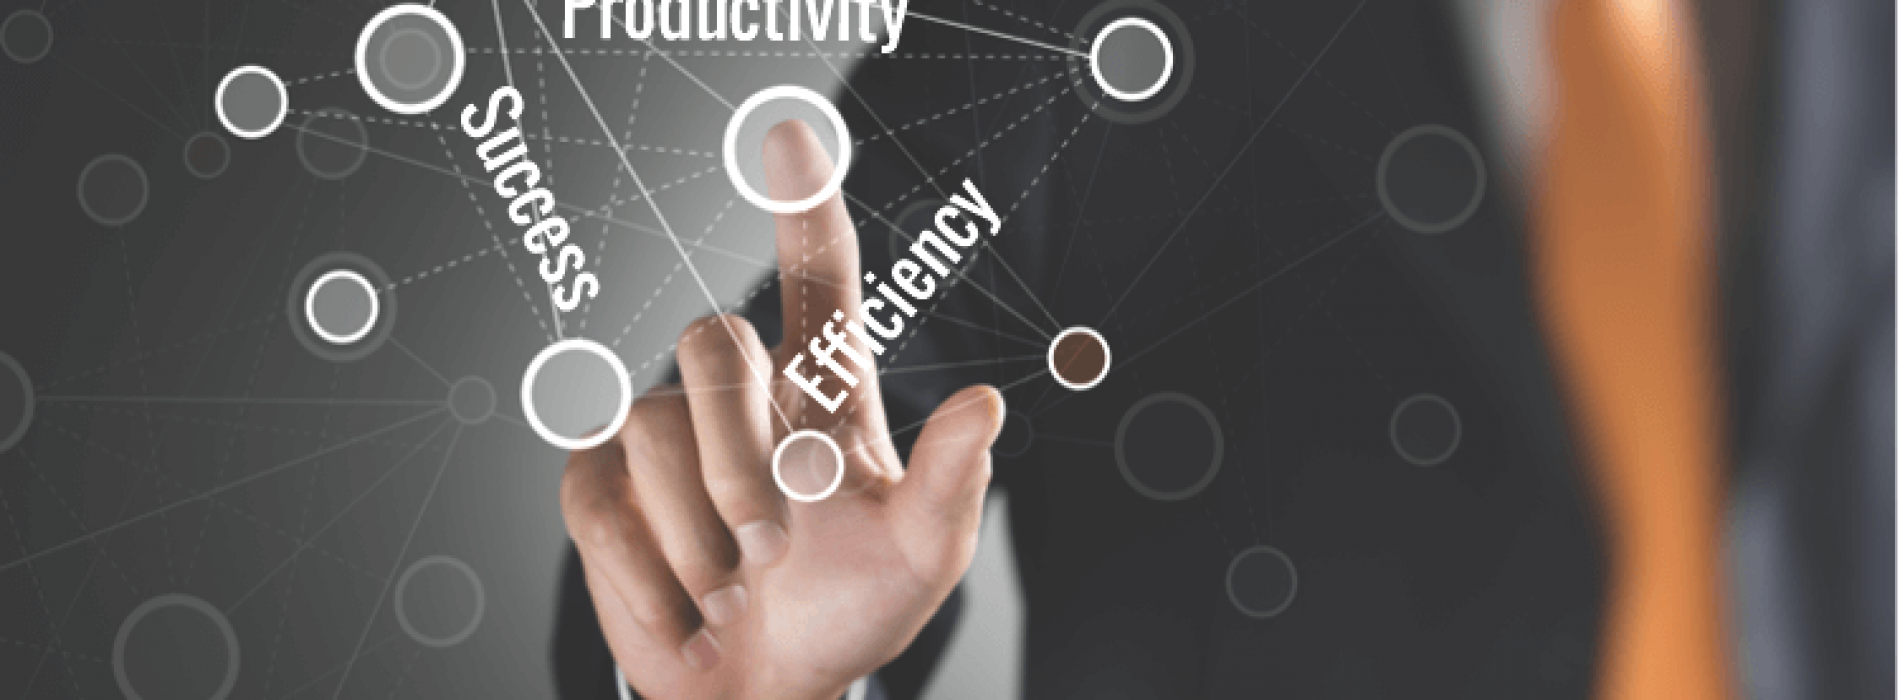 Boosting Productivity and Efficiency through Automation